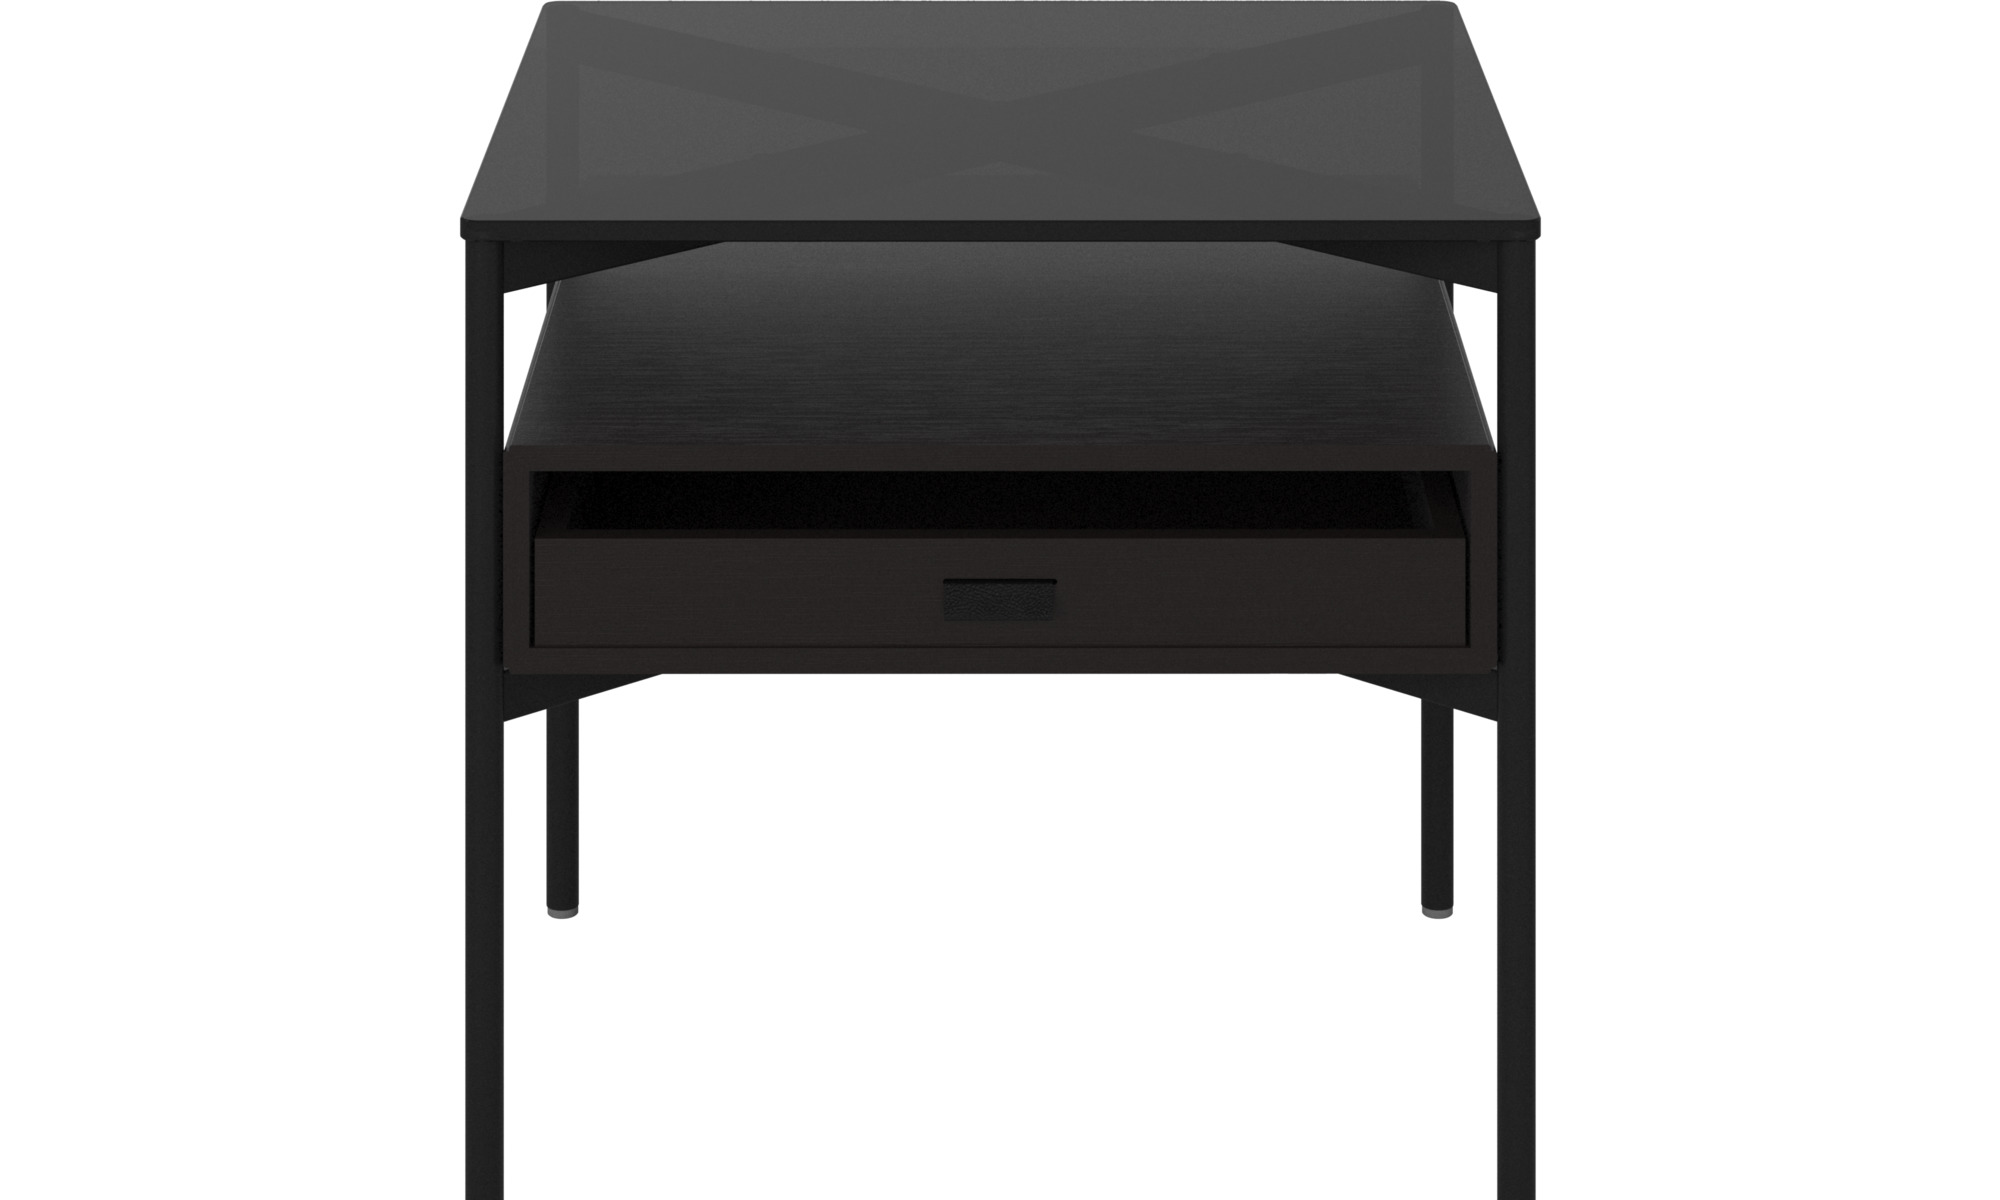 Small furniture - Los Angeles side table with storage - drawer - square - Brown - Glass